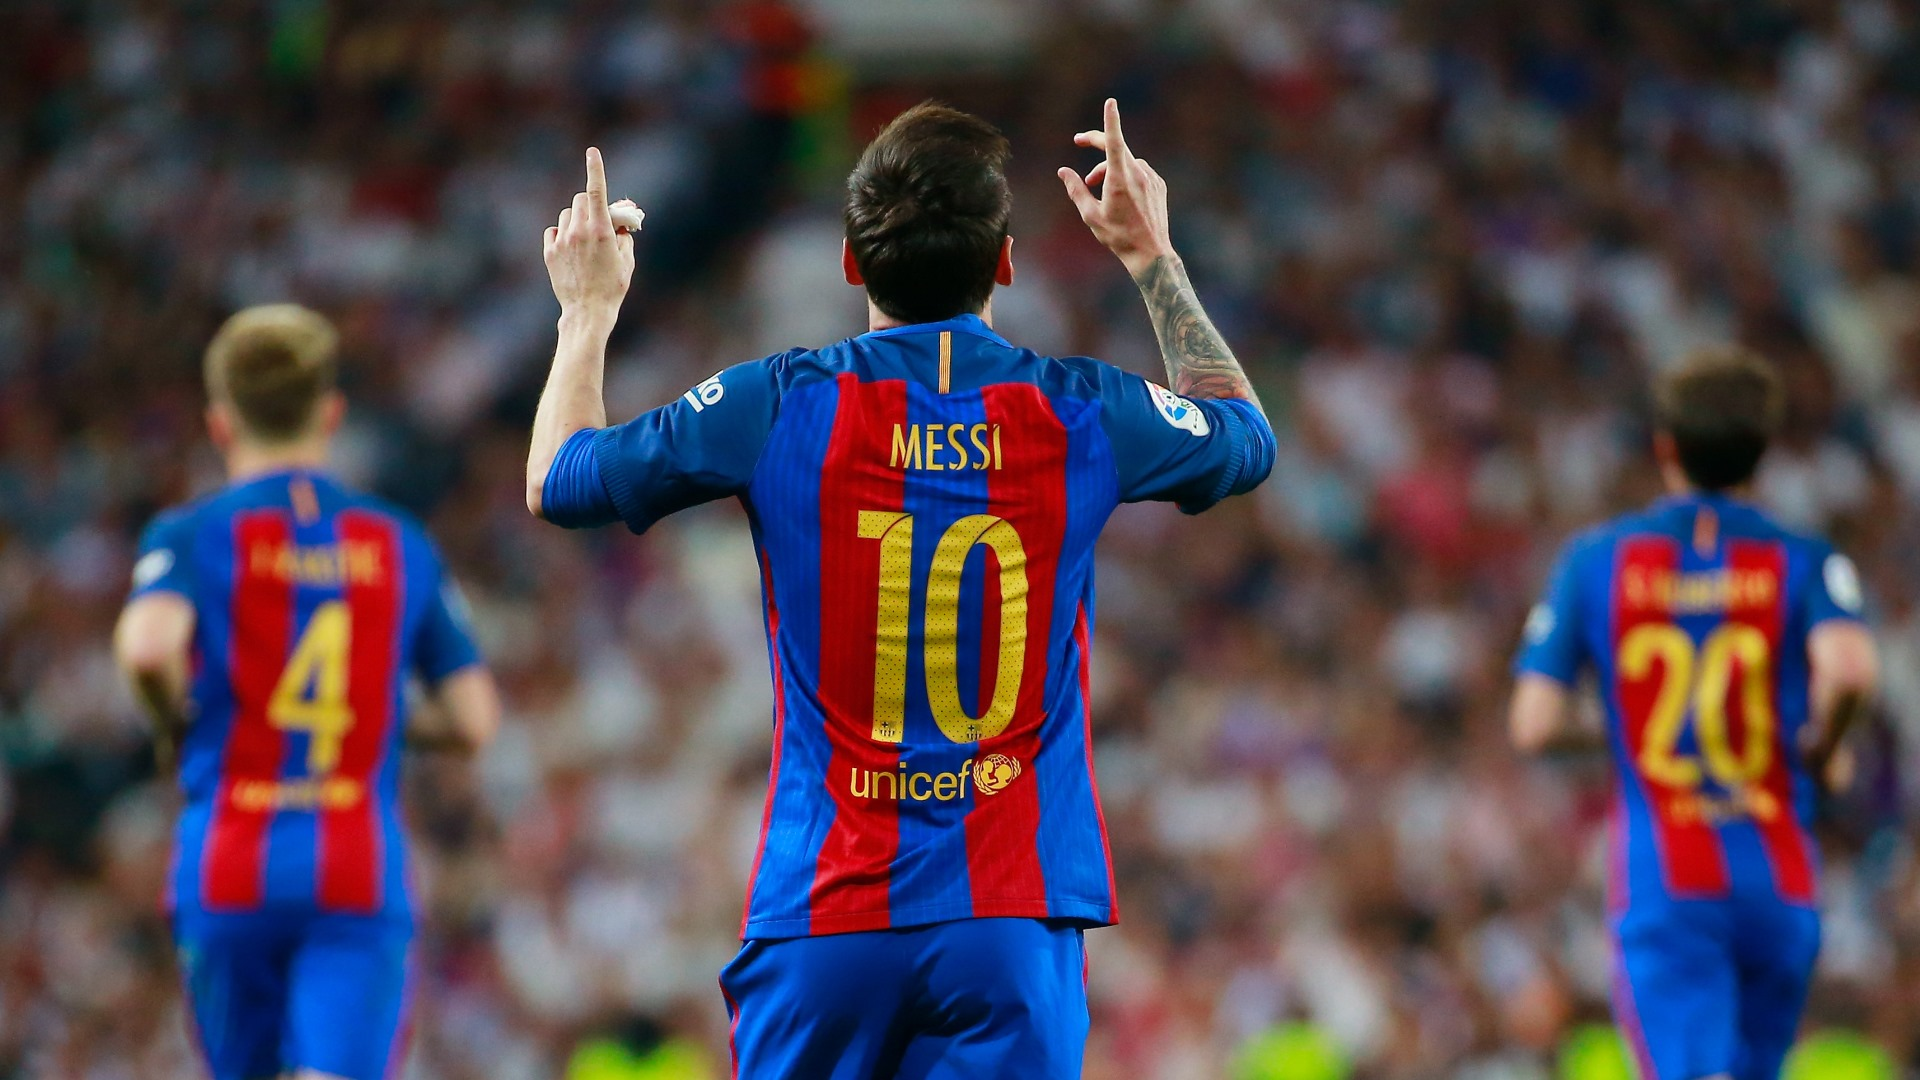 Messi 2020 wallpapers 3